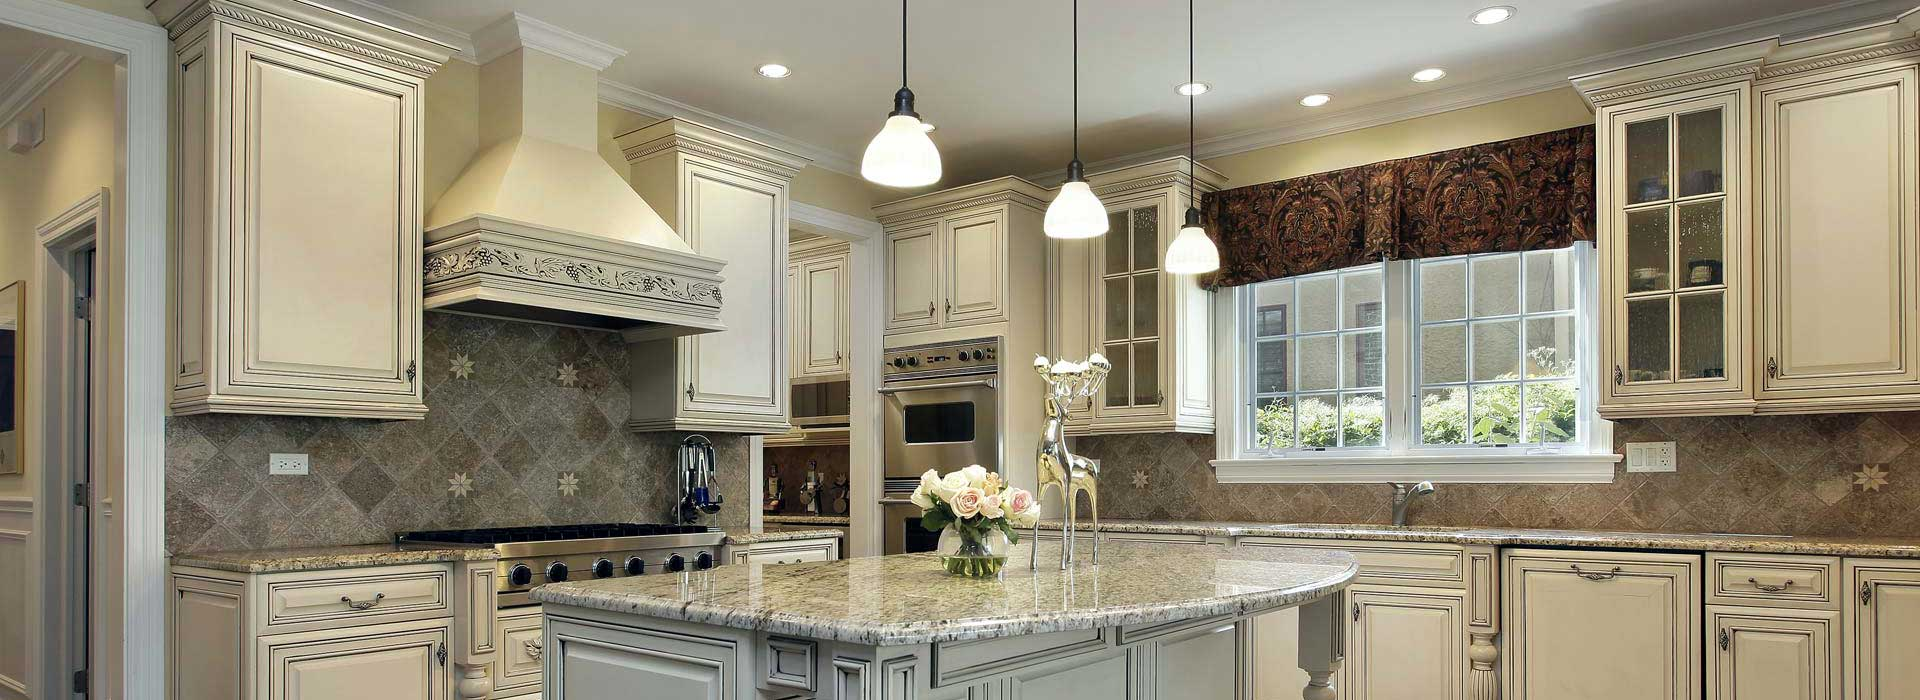 Kitchen Cabinet Remodeling Kitchen Cabinet Refacing New Look Kitchen Refacing Ny